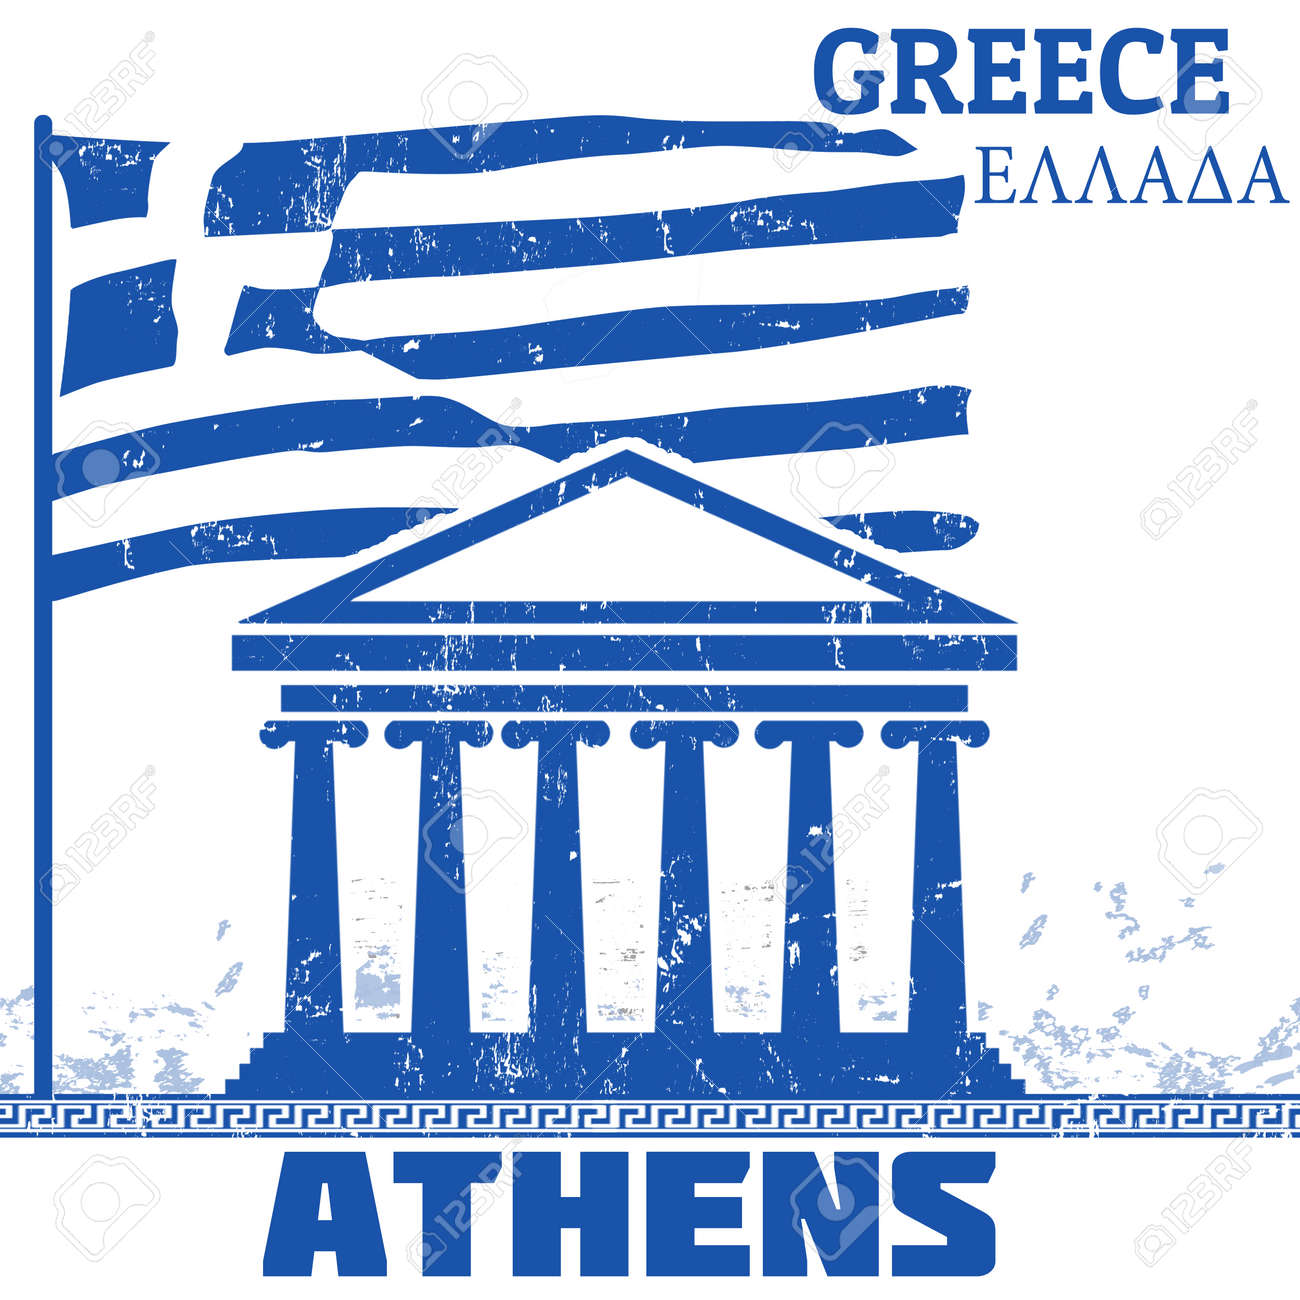 Outline athens skyline with blue buildings and copy space stock vector - Athens Skyline Grunge Poster With Name Of Athens Greece Vector Illustration